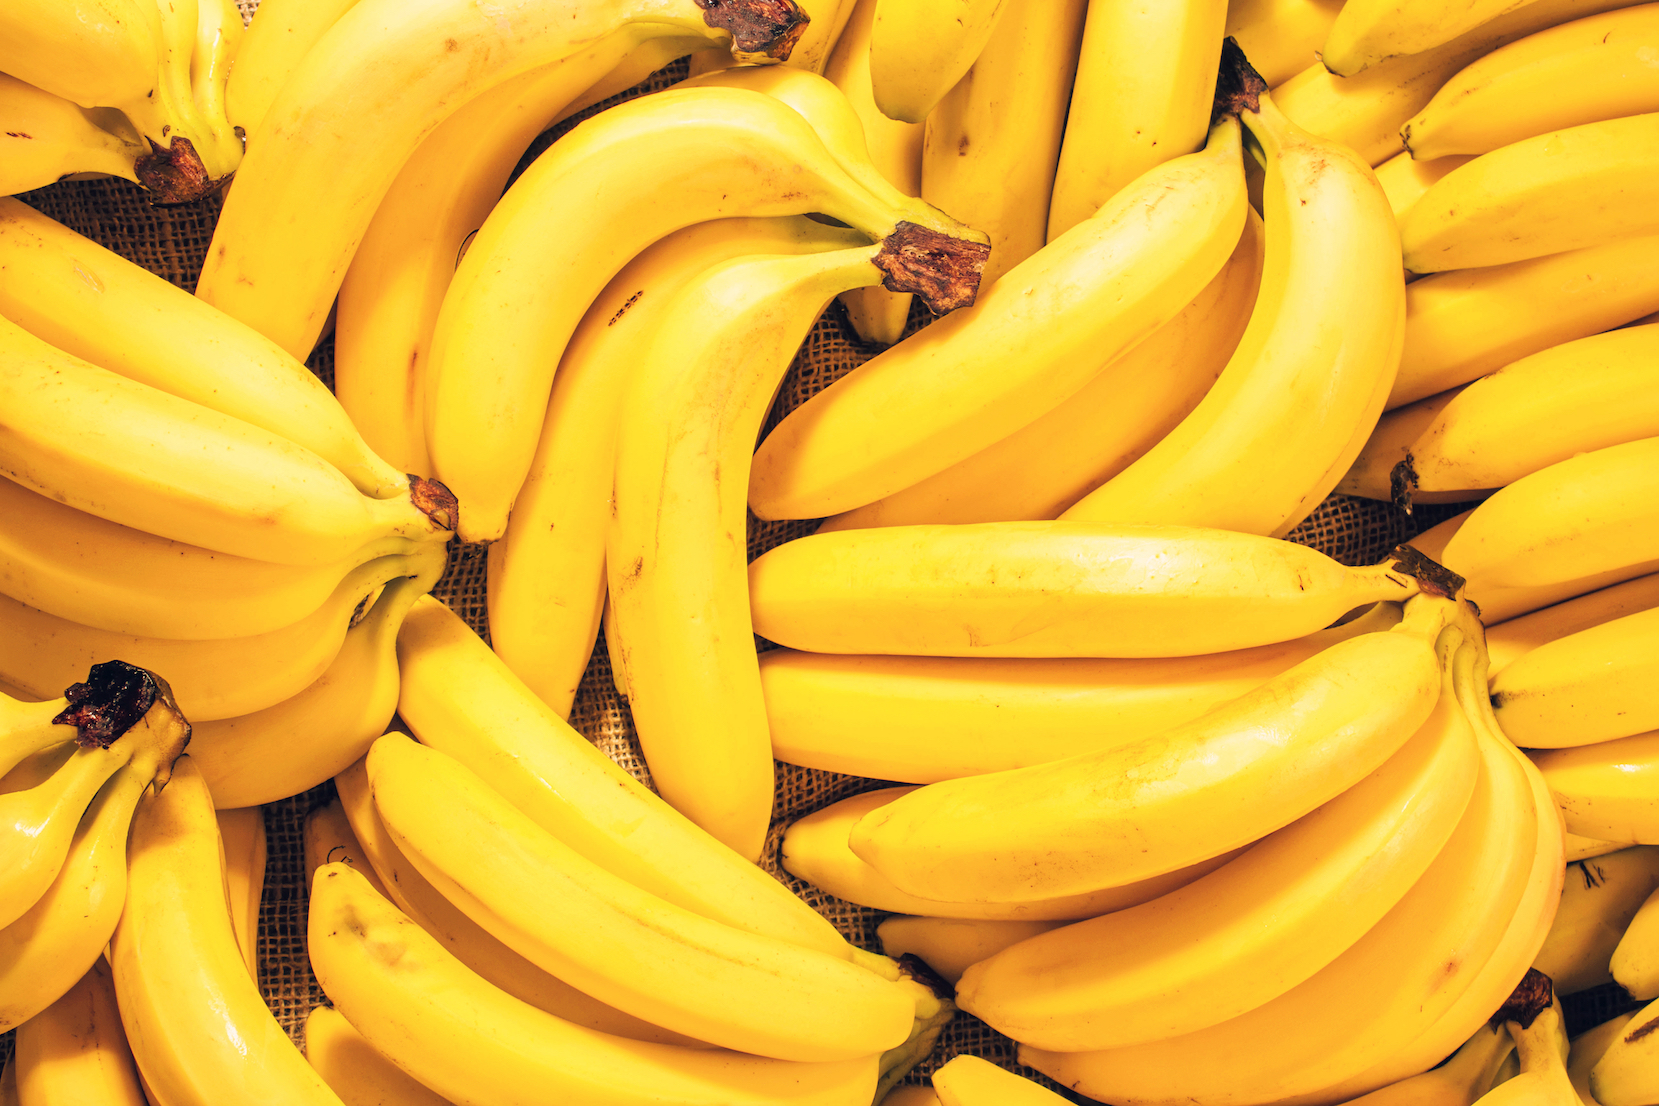 An unprecedented study demonstrates that potassium-packed foods such as bananas and avocados may help to prevent hardening of the arteries.